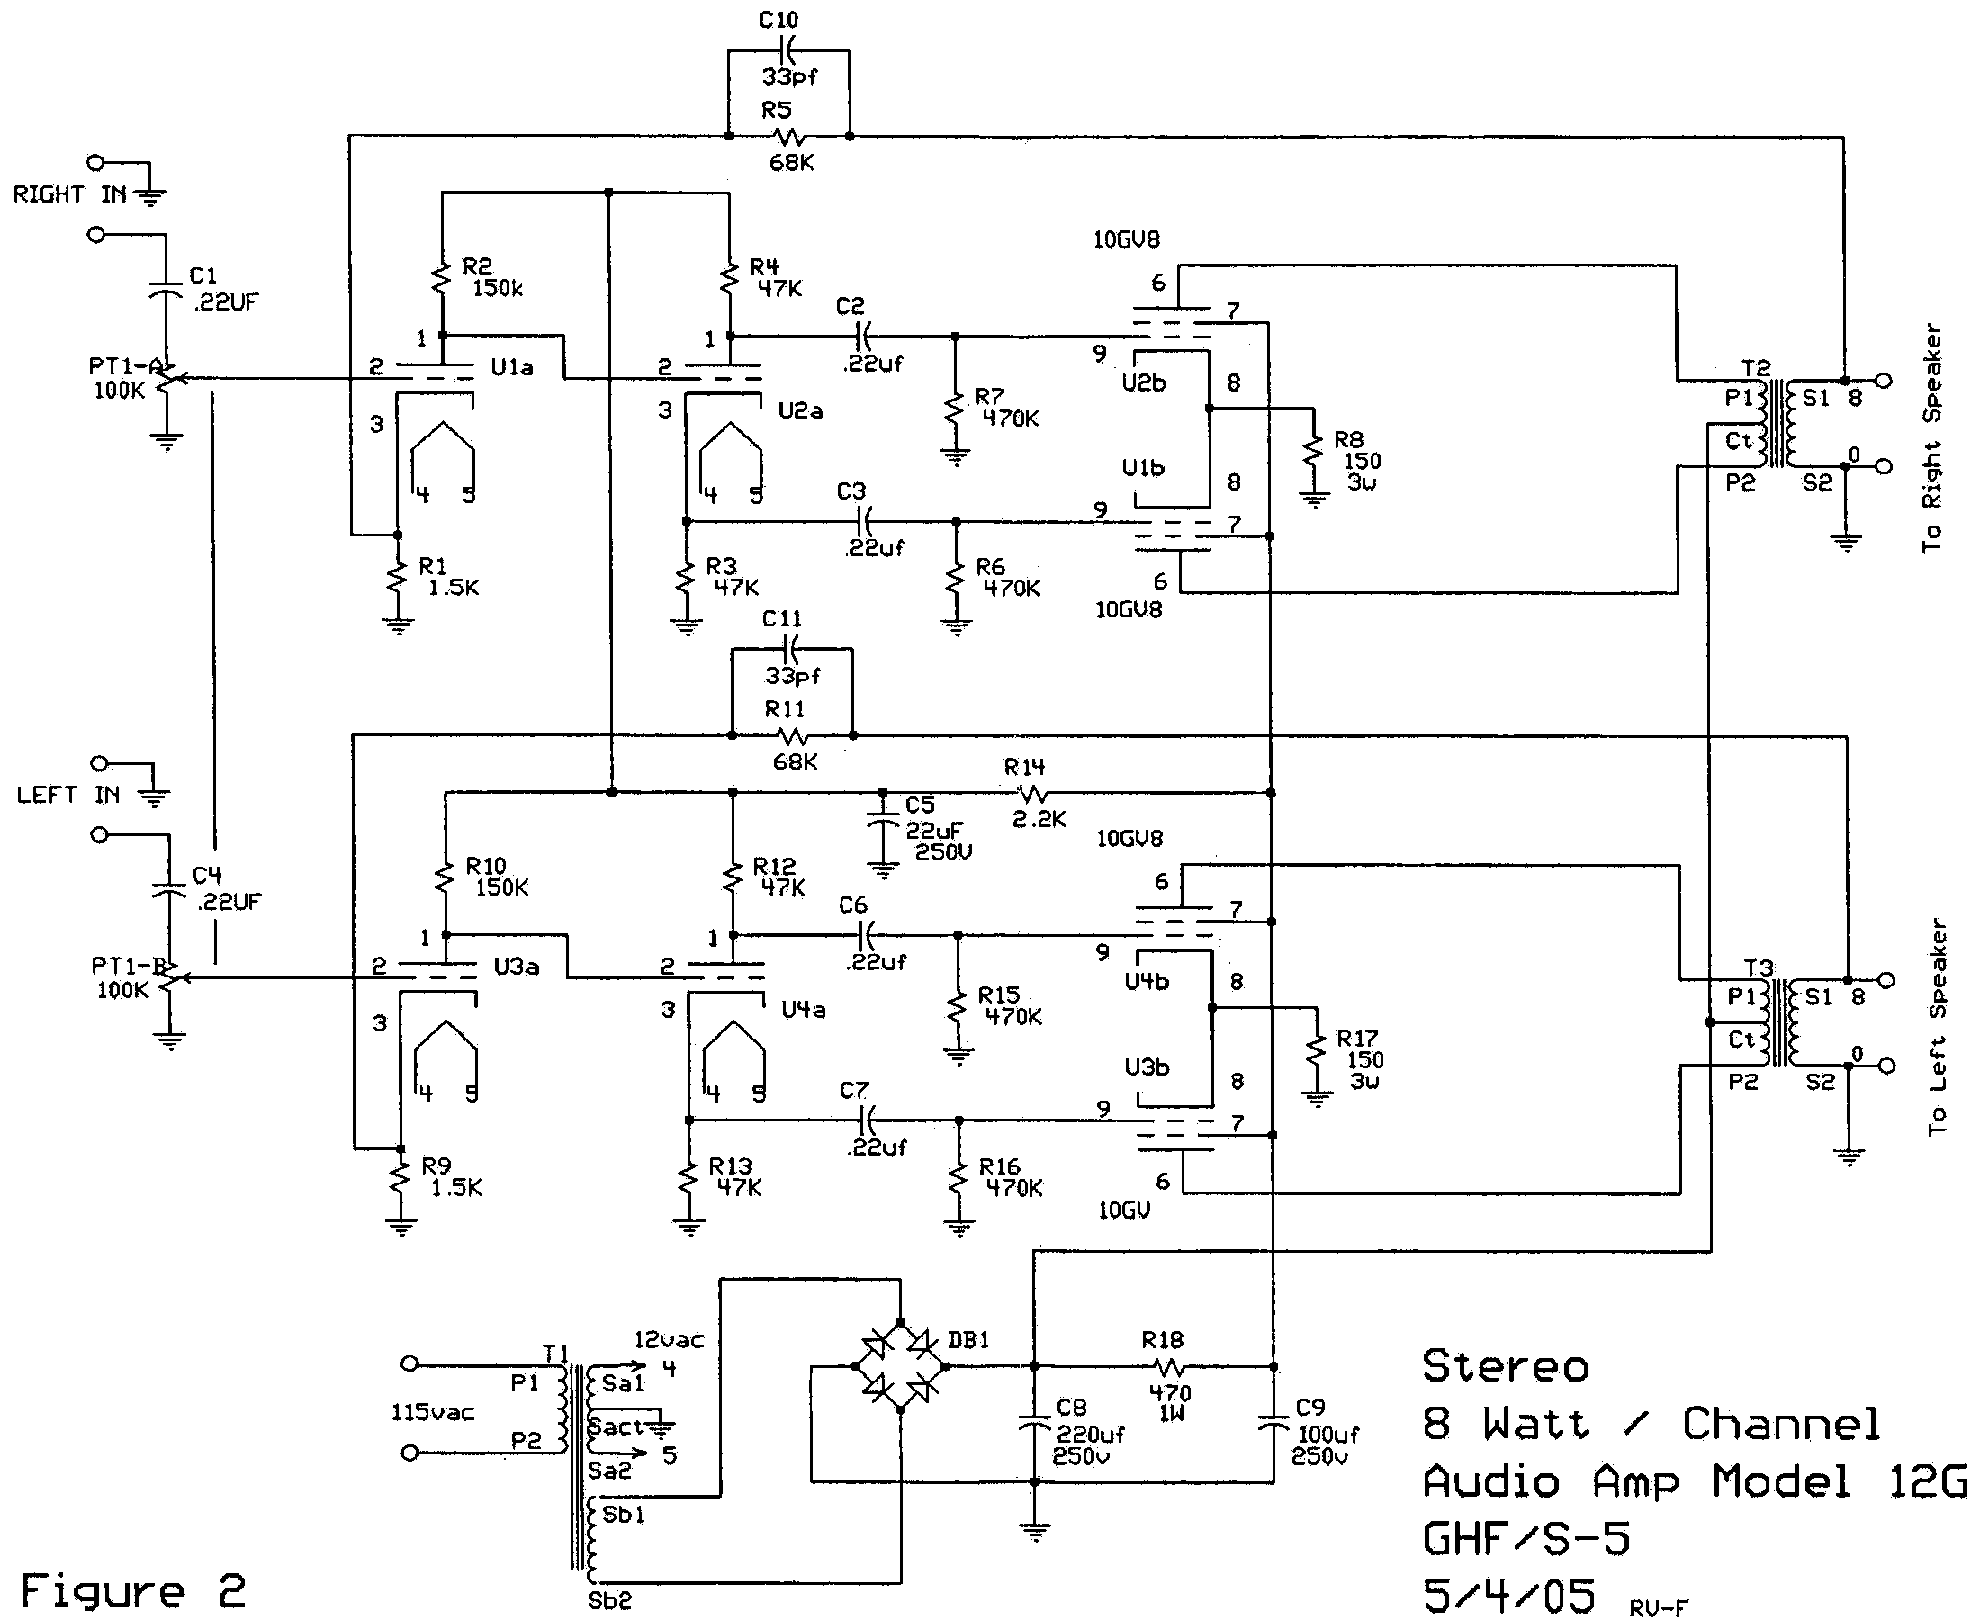 Push Pull Schematic as well 350z Bose  lifier Schematic Diagram as well 300b  lifier Schematics besides Push Pull Schematic 6v6 Tube in addition Homemade Audio   Schematics For Drawing. on kt88 tube lifier schematics